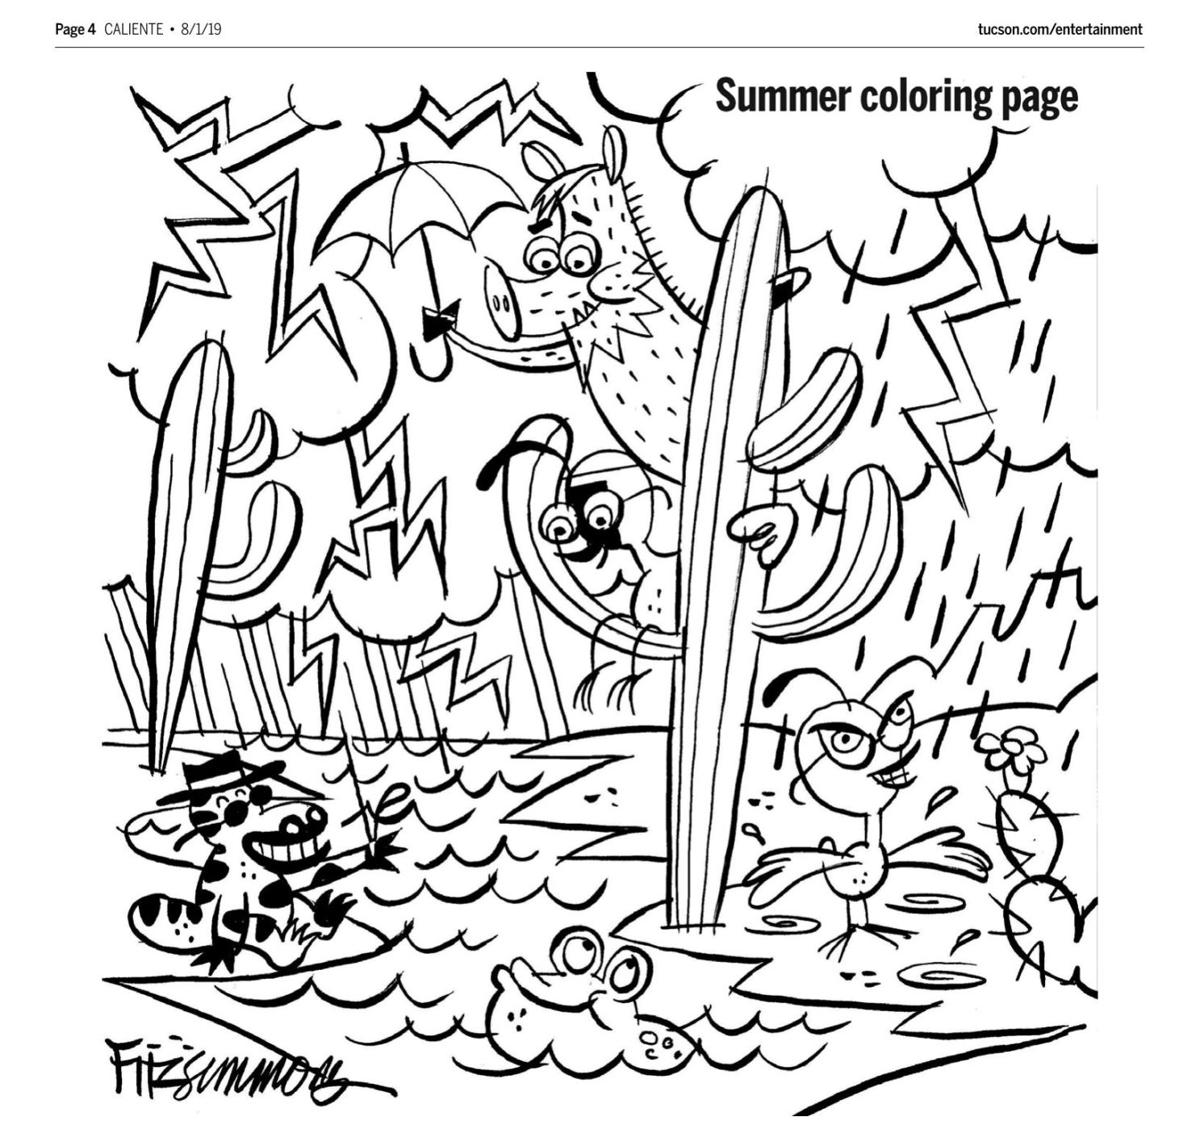 August 1 coloring page